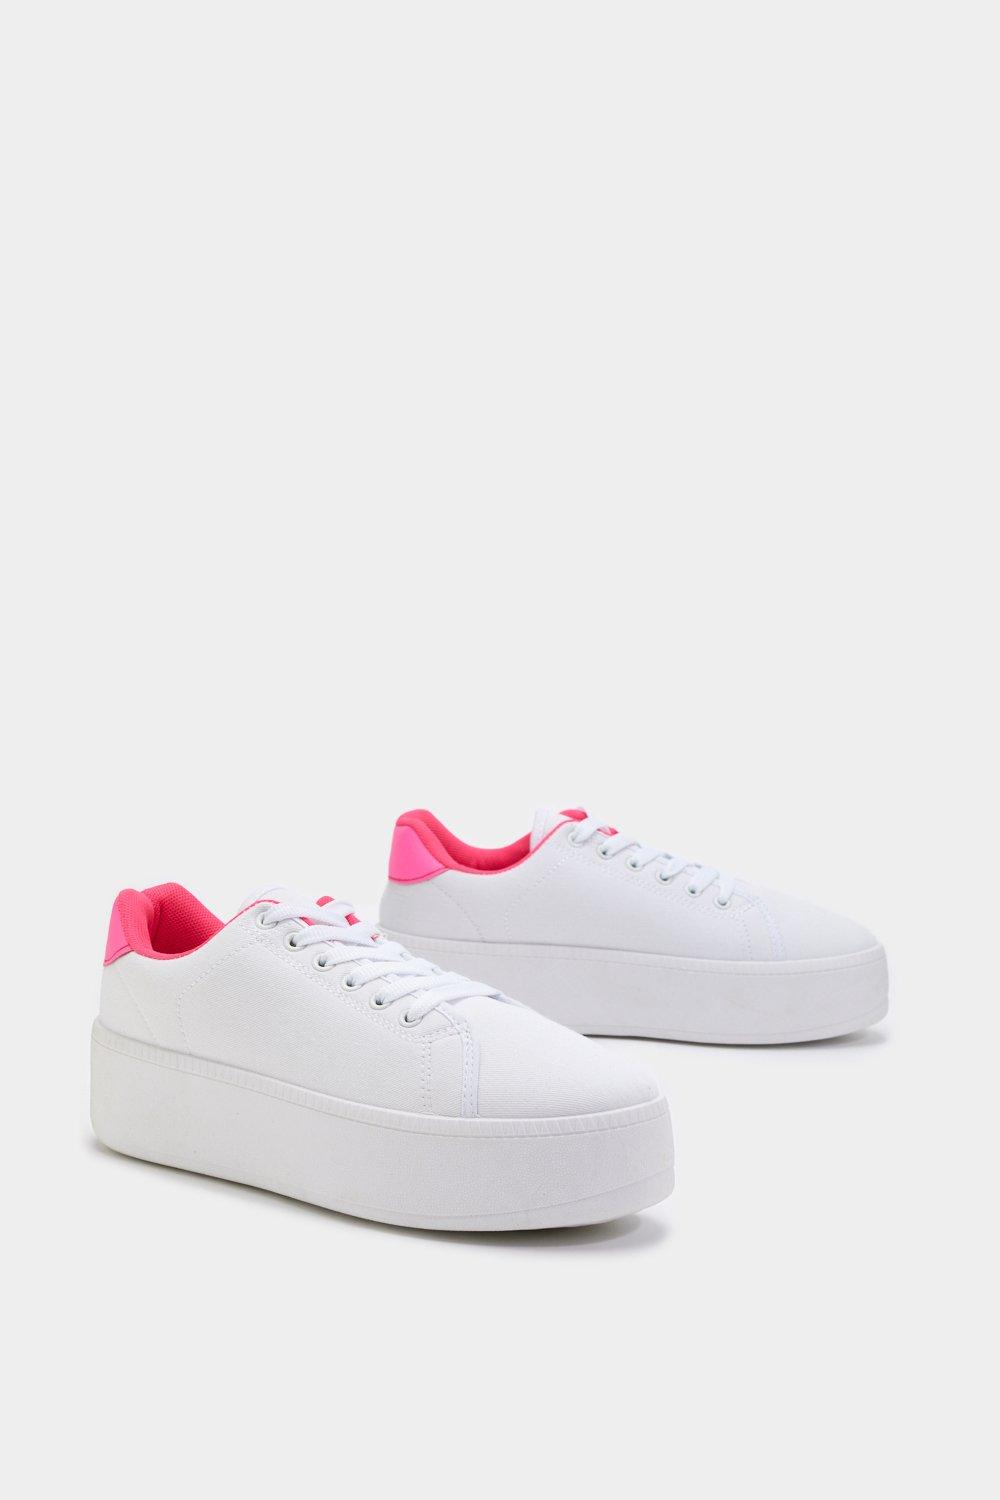 f3d584b6629 Rise Up Neon Platform Sneakers | Shop Clothes at Nasty Gal!